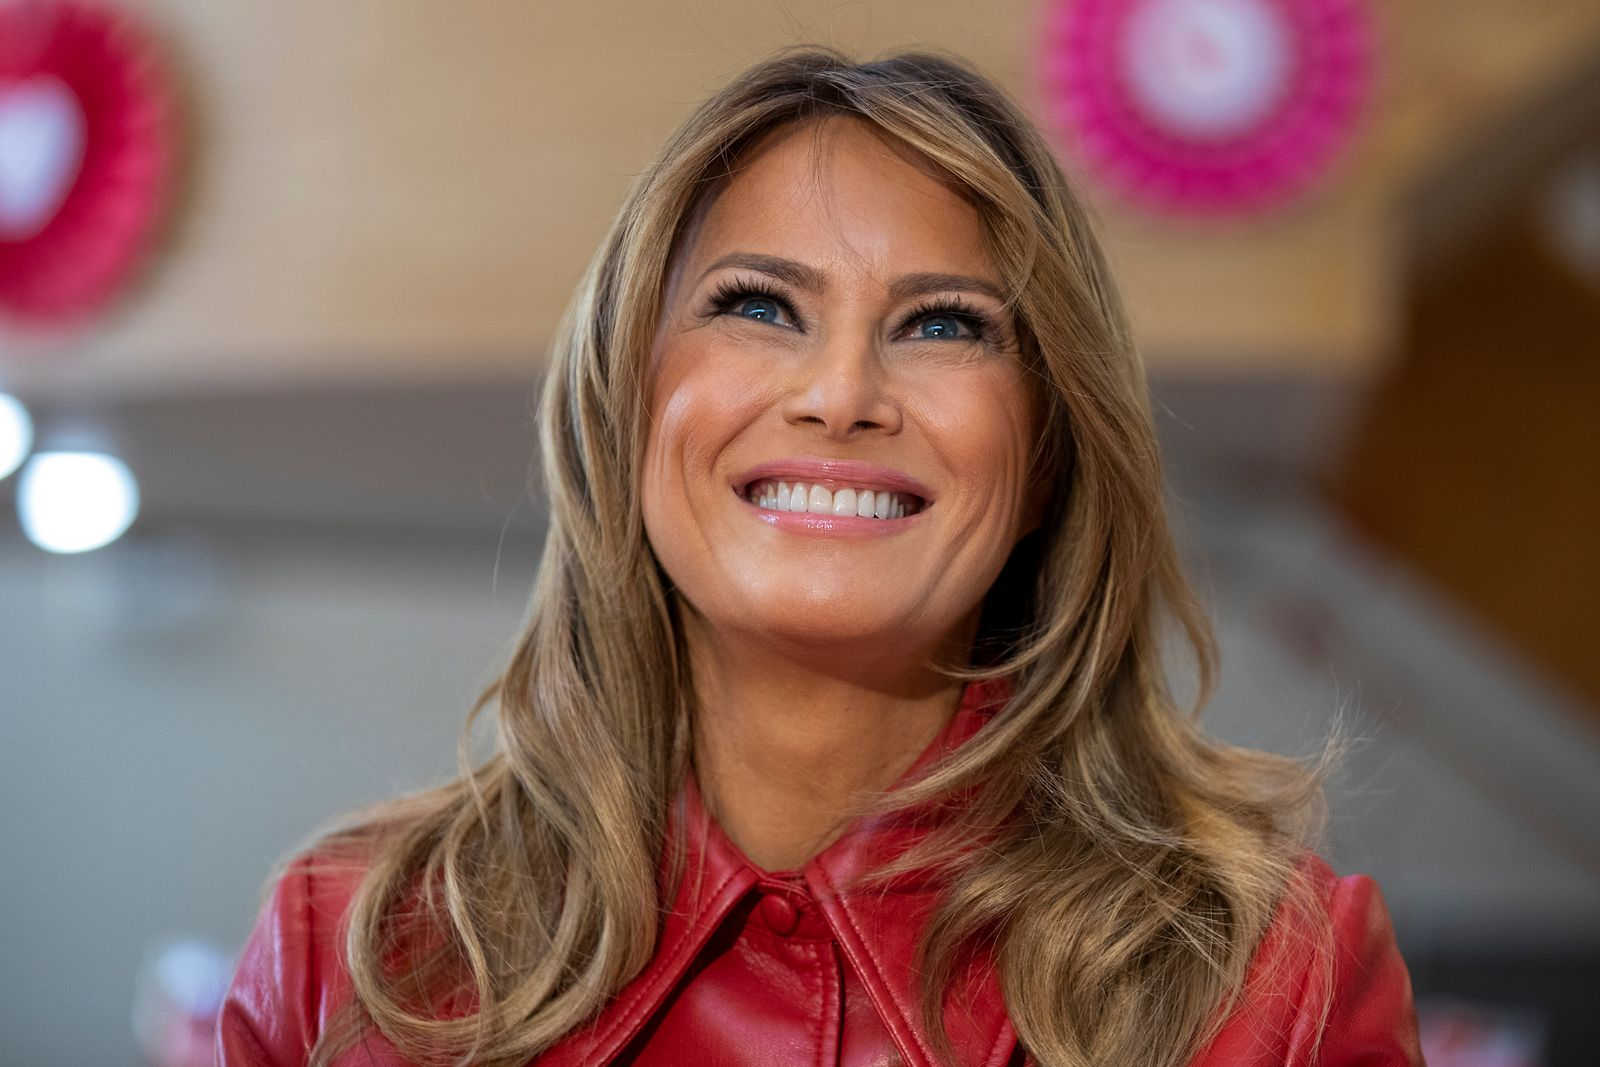 First Lady Melania Trump visits the Children's Inn at National Institutes of Health on February 14, 2020, in Bethesda, Maryland | Photo: Tasos Katopodis/Getty Images